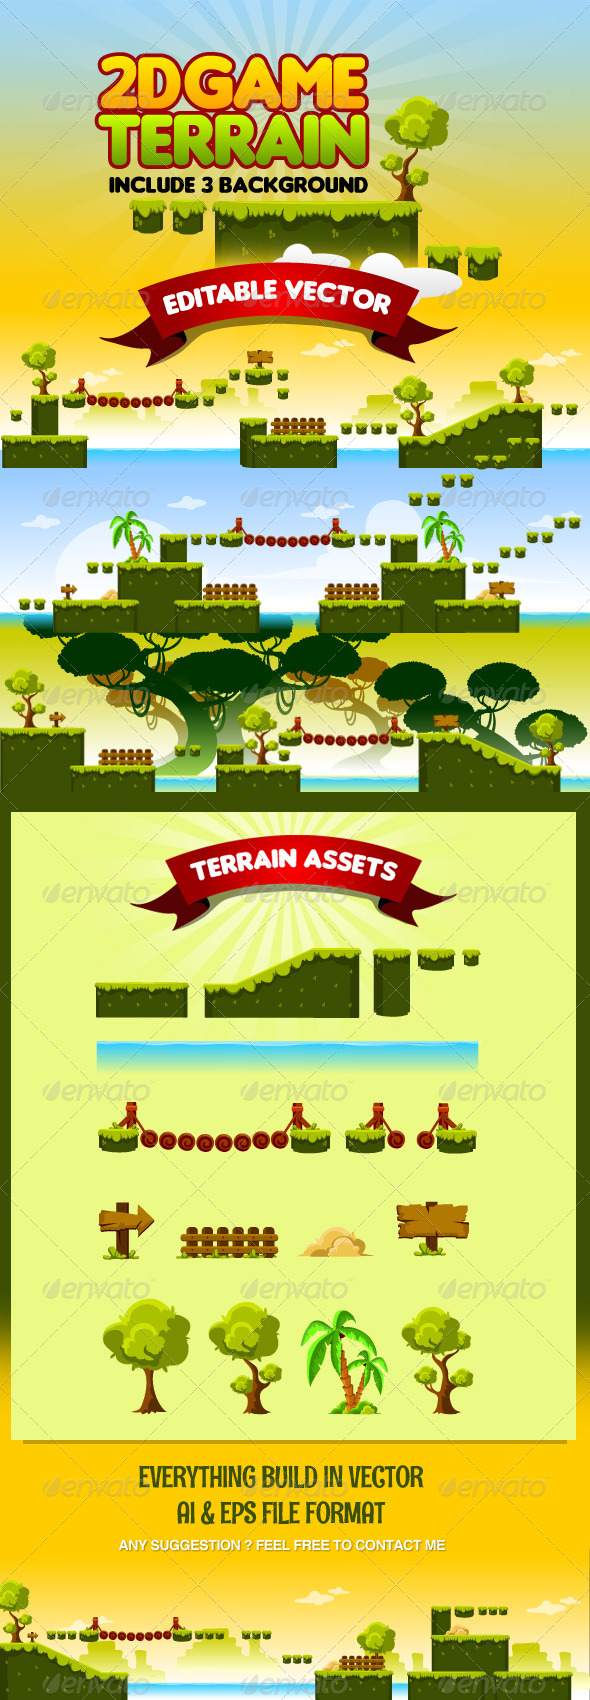 GraphicRiver 2D Game Terrain 8749076